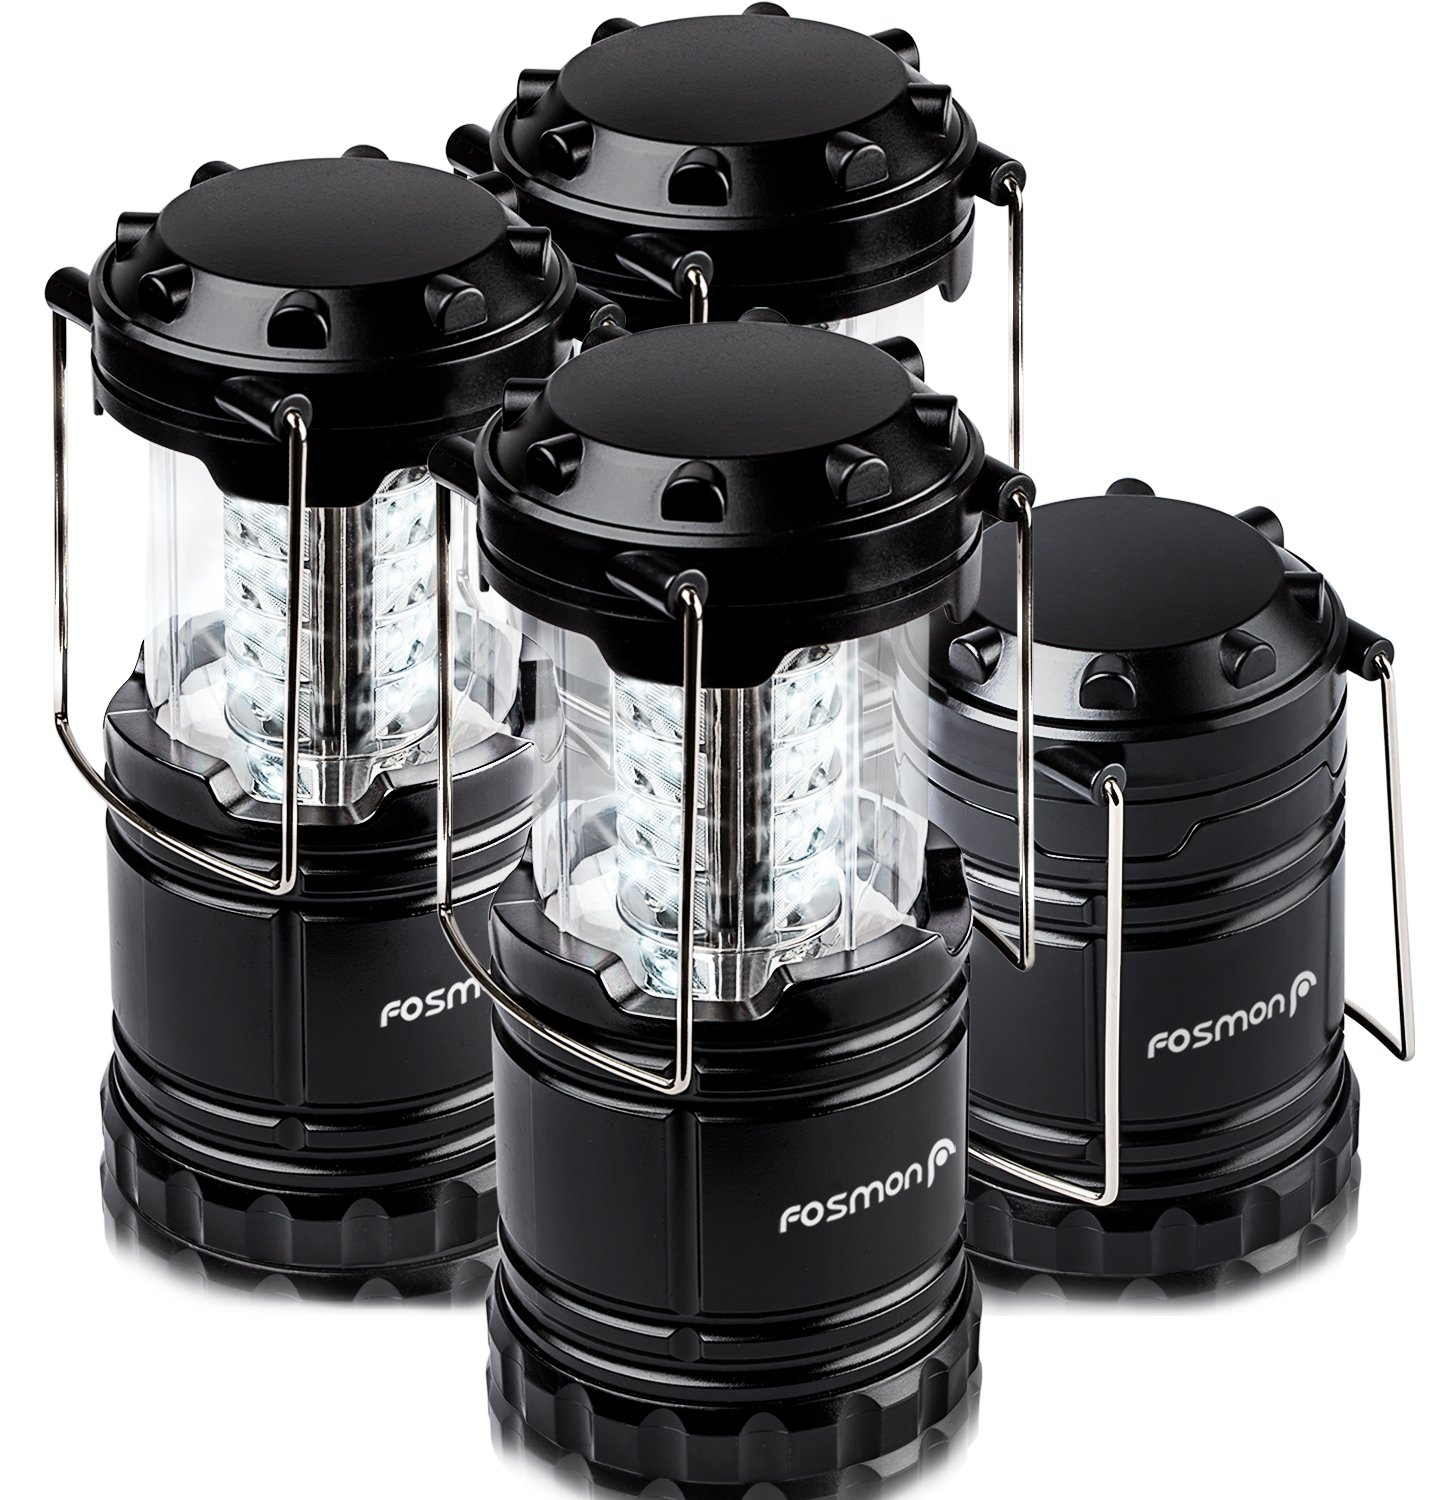 LED Lantern 4 Pack, Fosmon Portable Outdoor LED Collapsible Camping Lantern, Military Graded and Water Resistant with 12x AA Batteries - Black